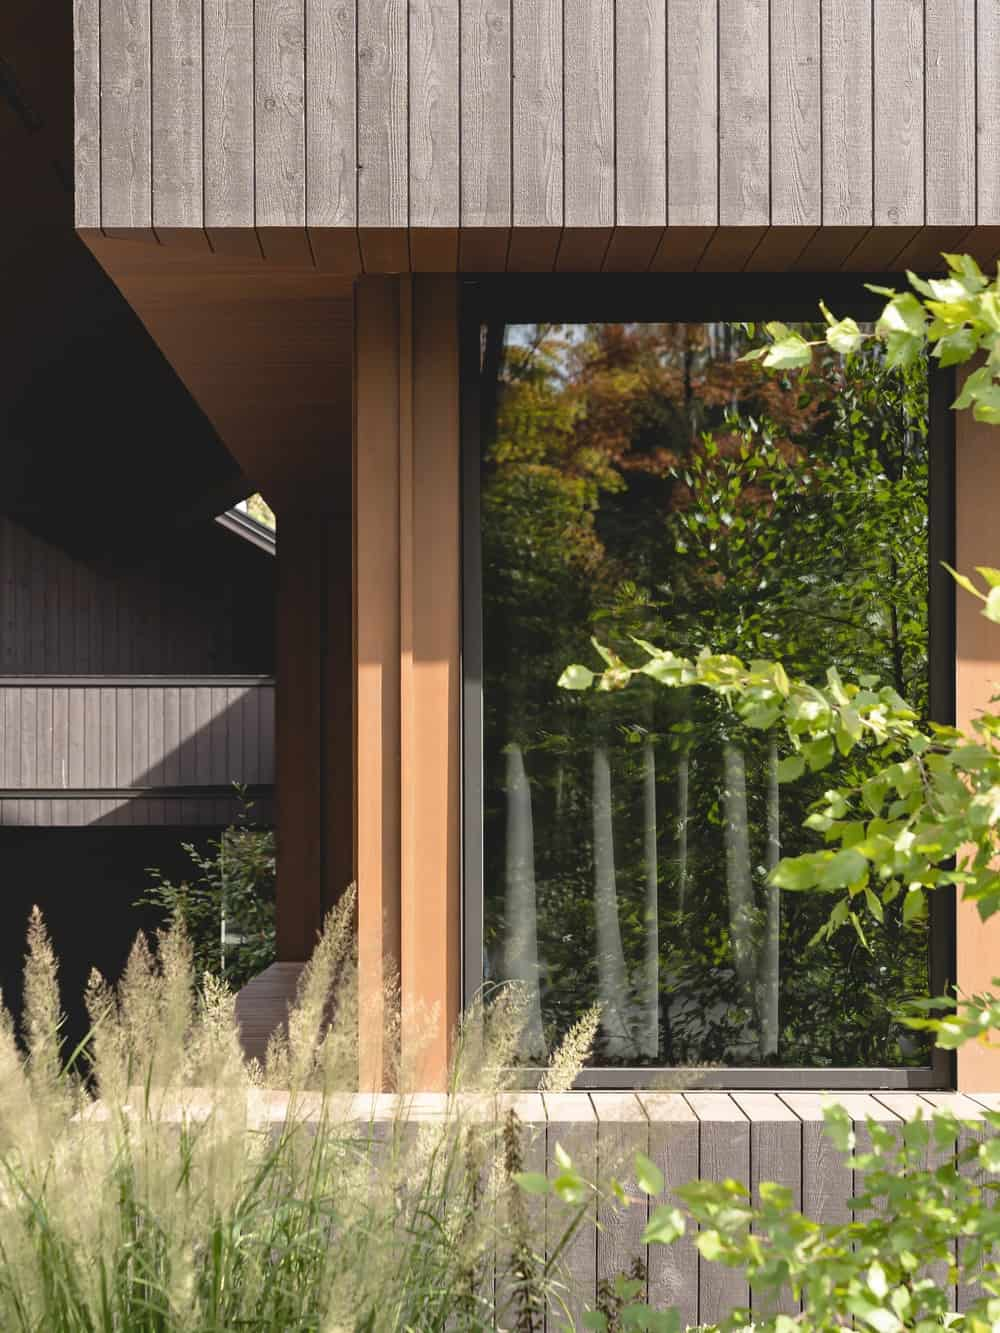 This is a close look at the exterior corner of the house with glass walls and wooden support beams.